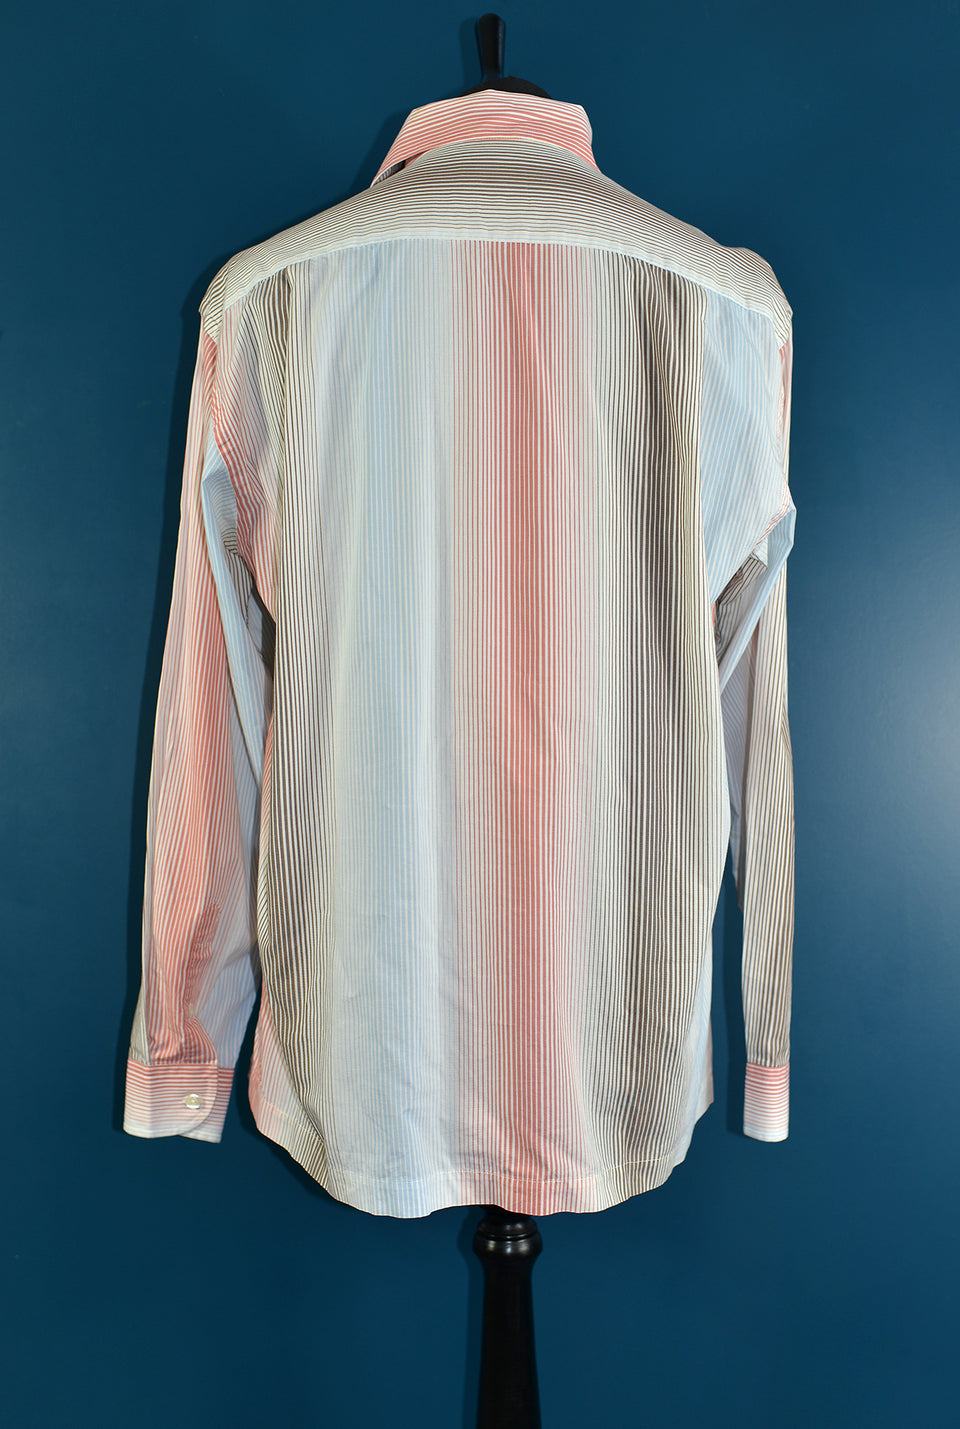 McGREGOR Men's Cotton Long Sleeve Pastel Stripy Shirt, Size L. Pre-loved.